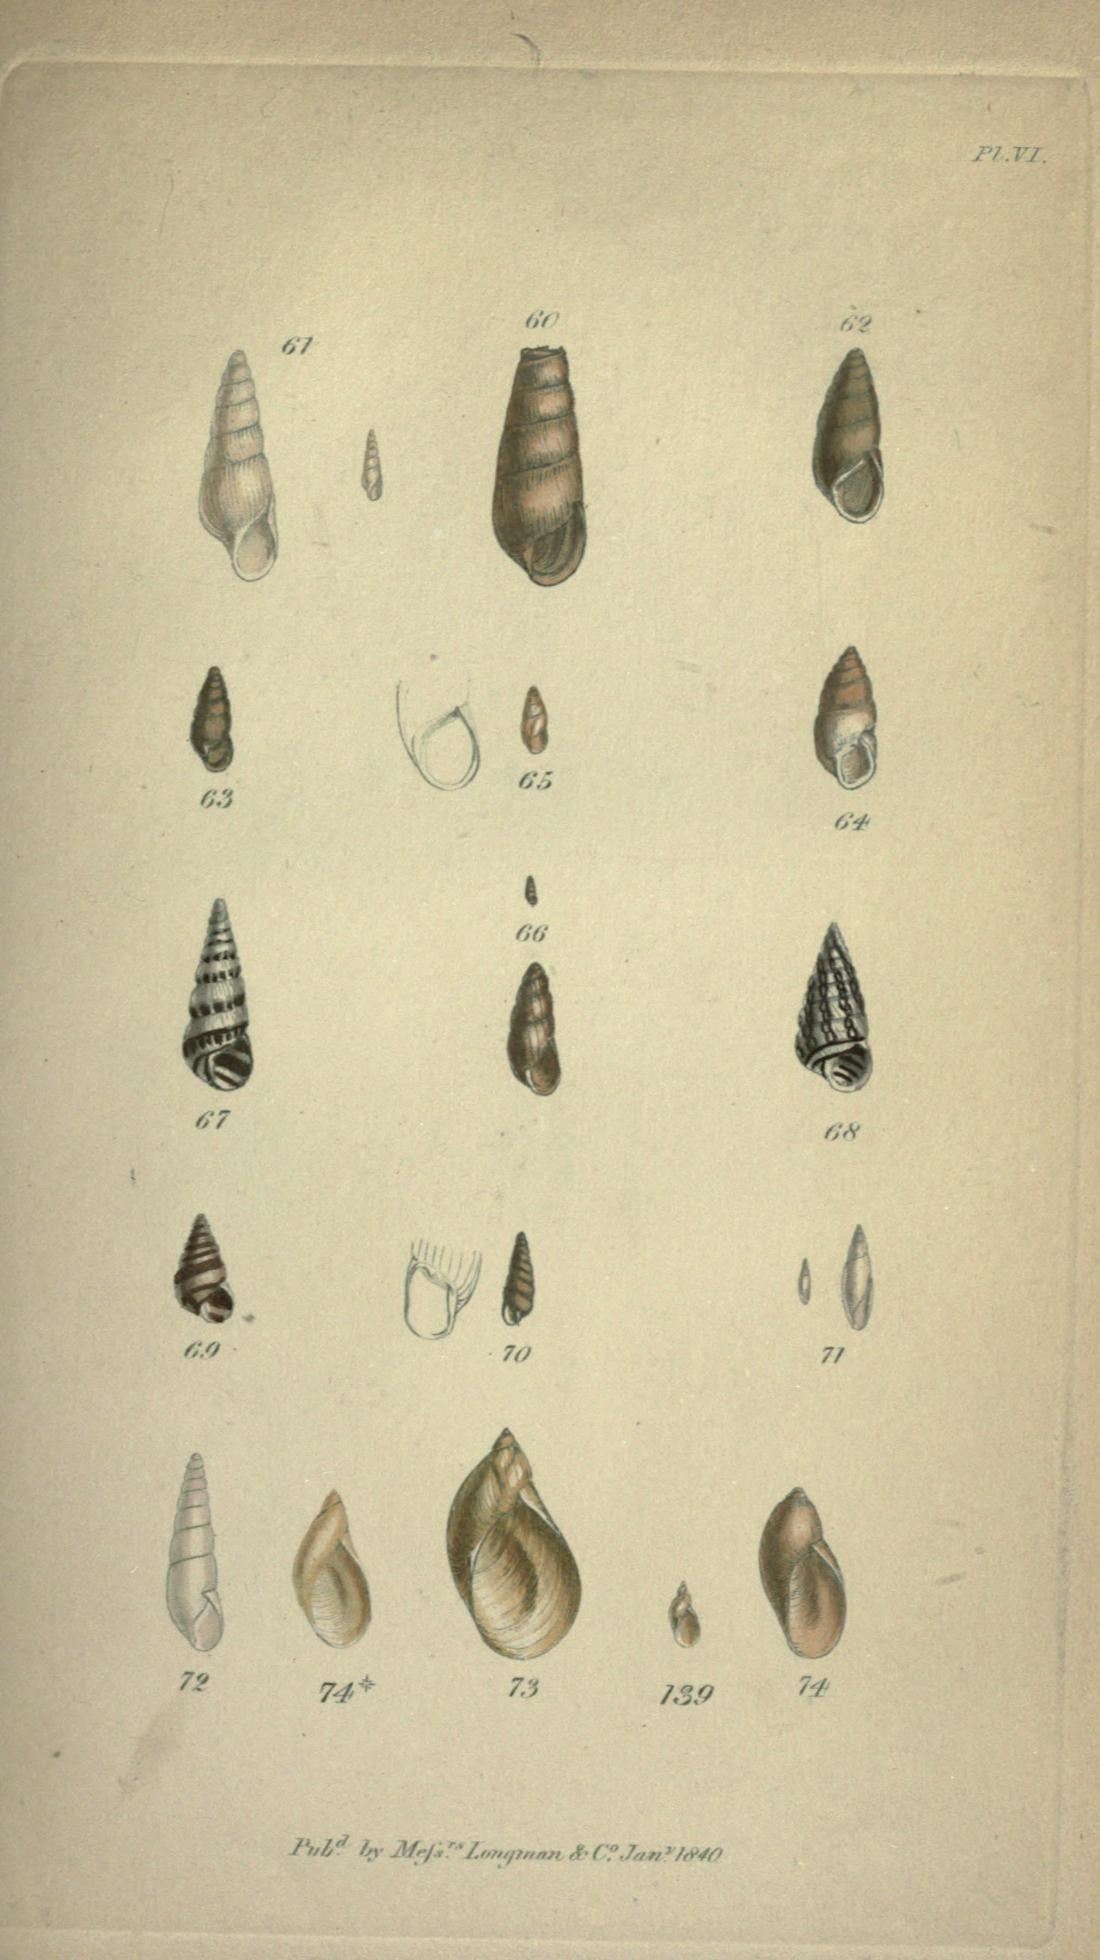 Plate VI, figures 61 through 74. Page 337.